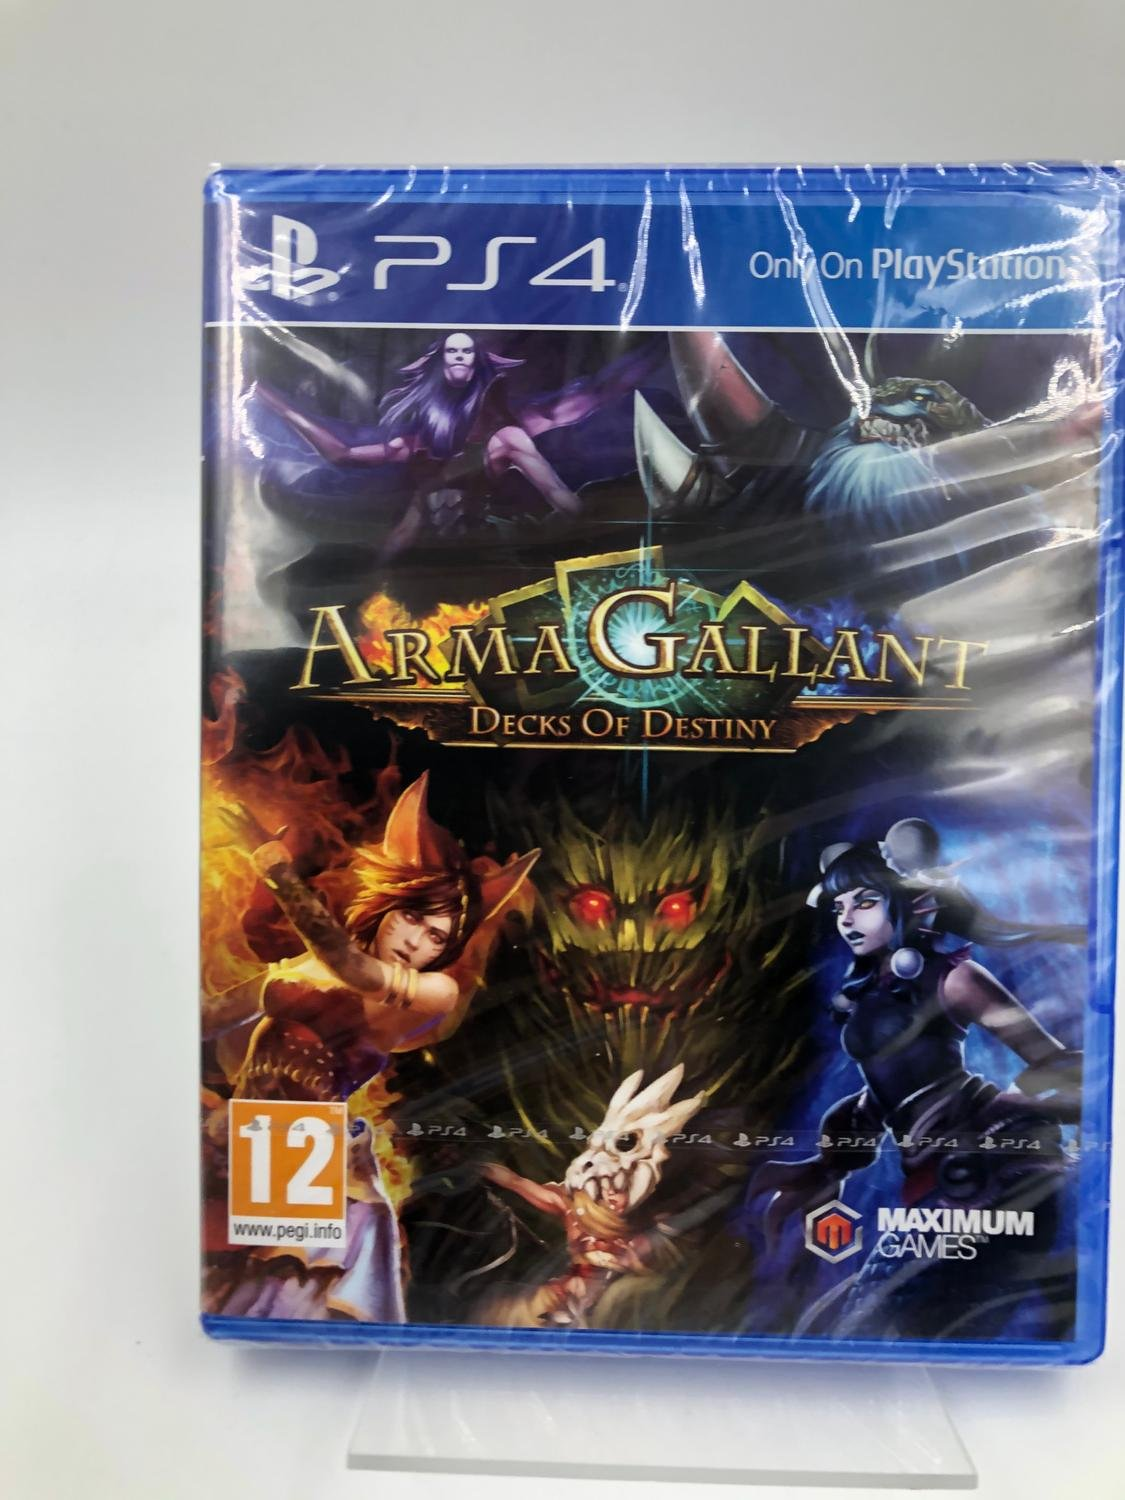 Arma Gallant Decks Of Destiny Playstation 4 PS4 Nytt Inplastat